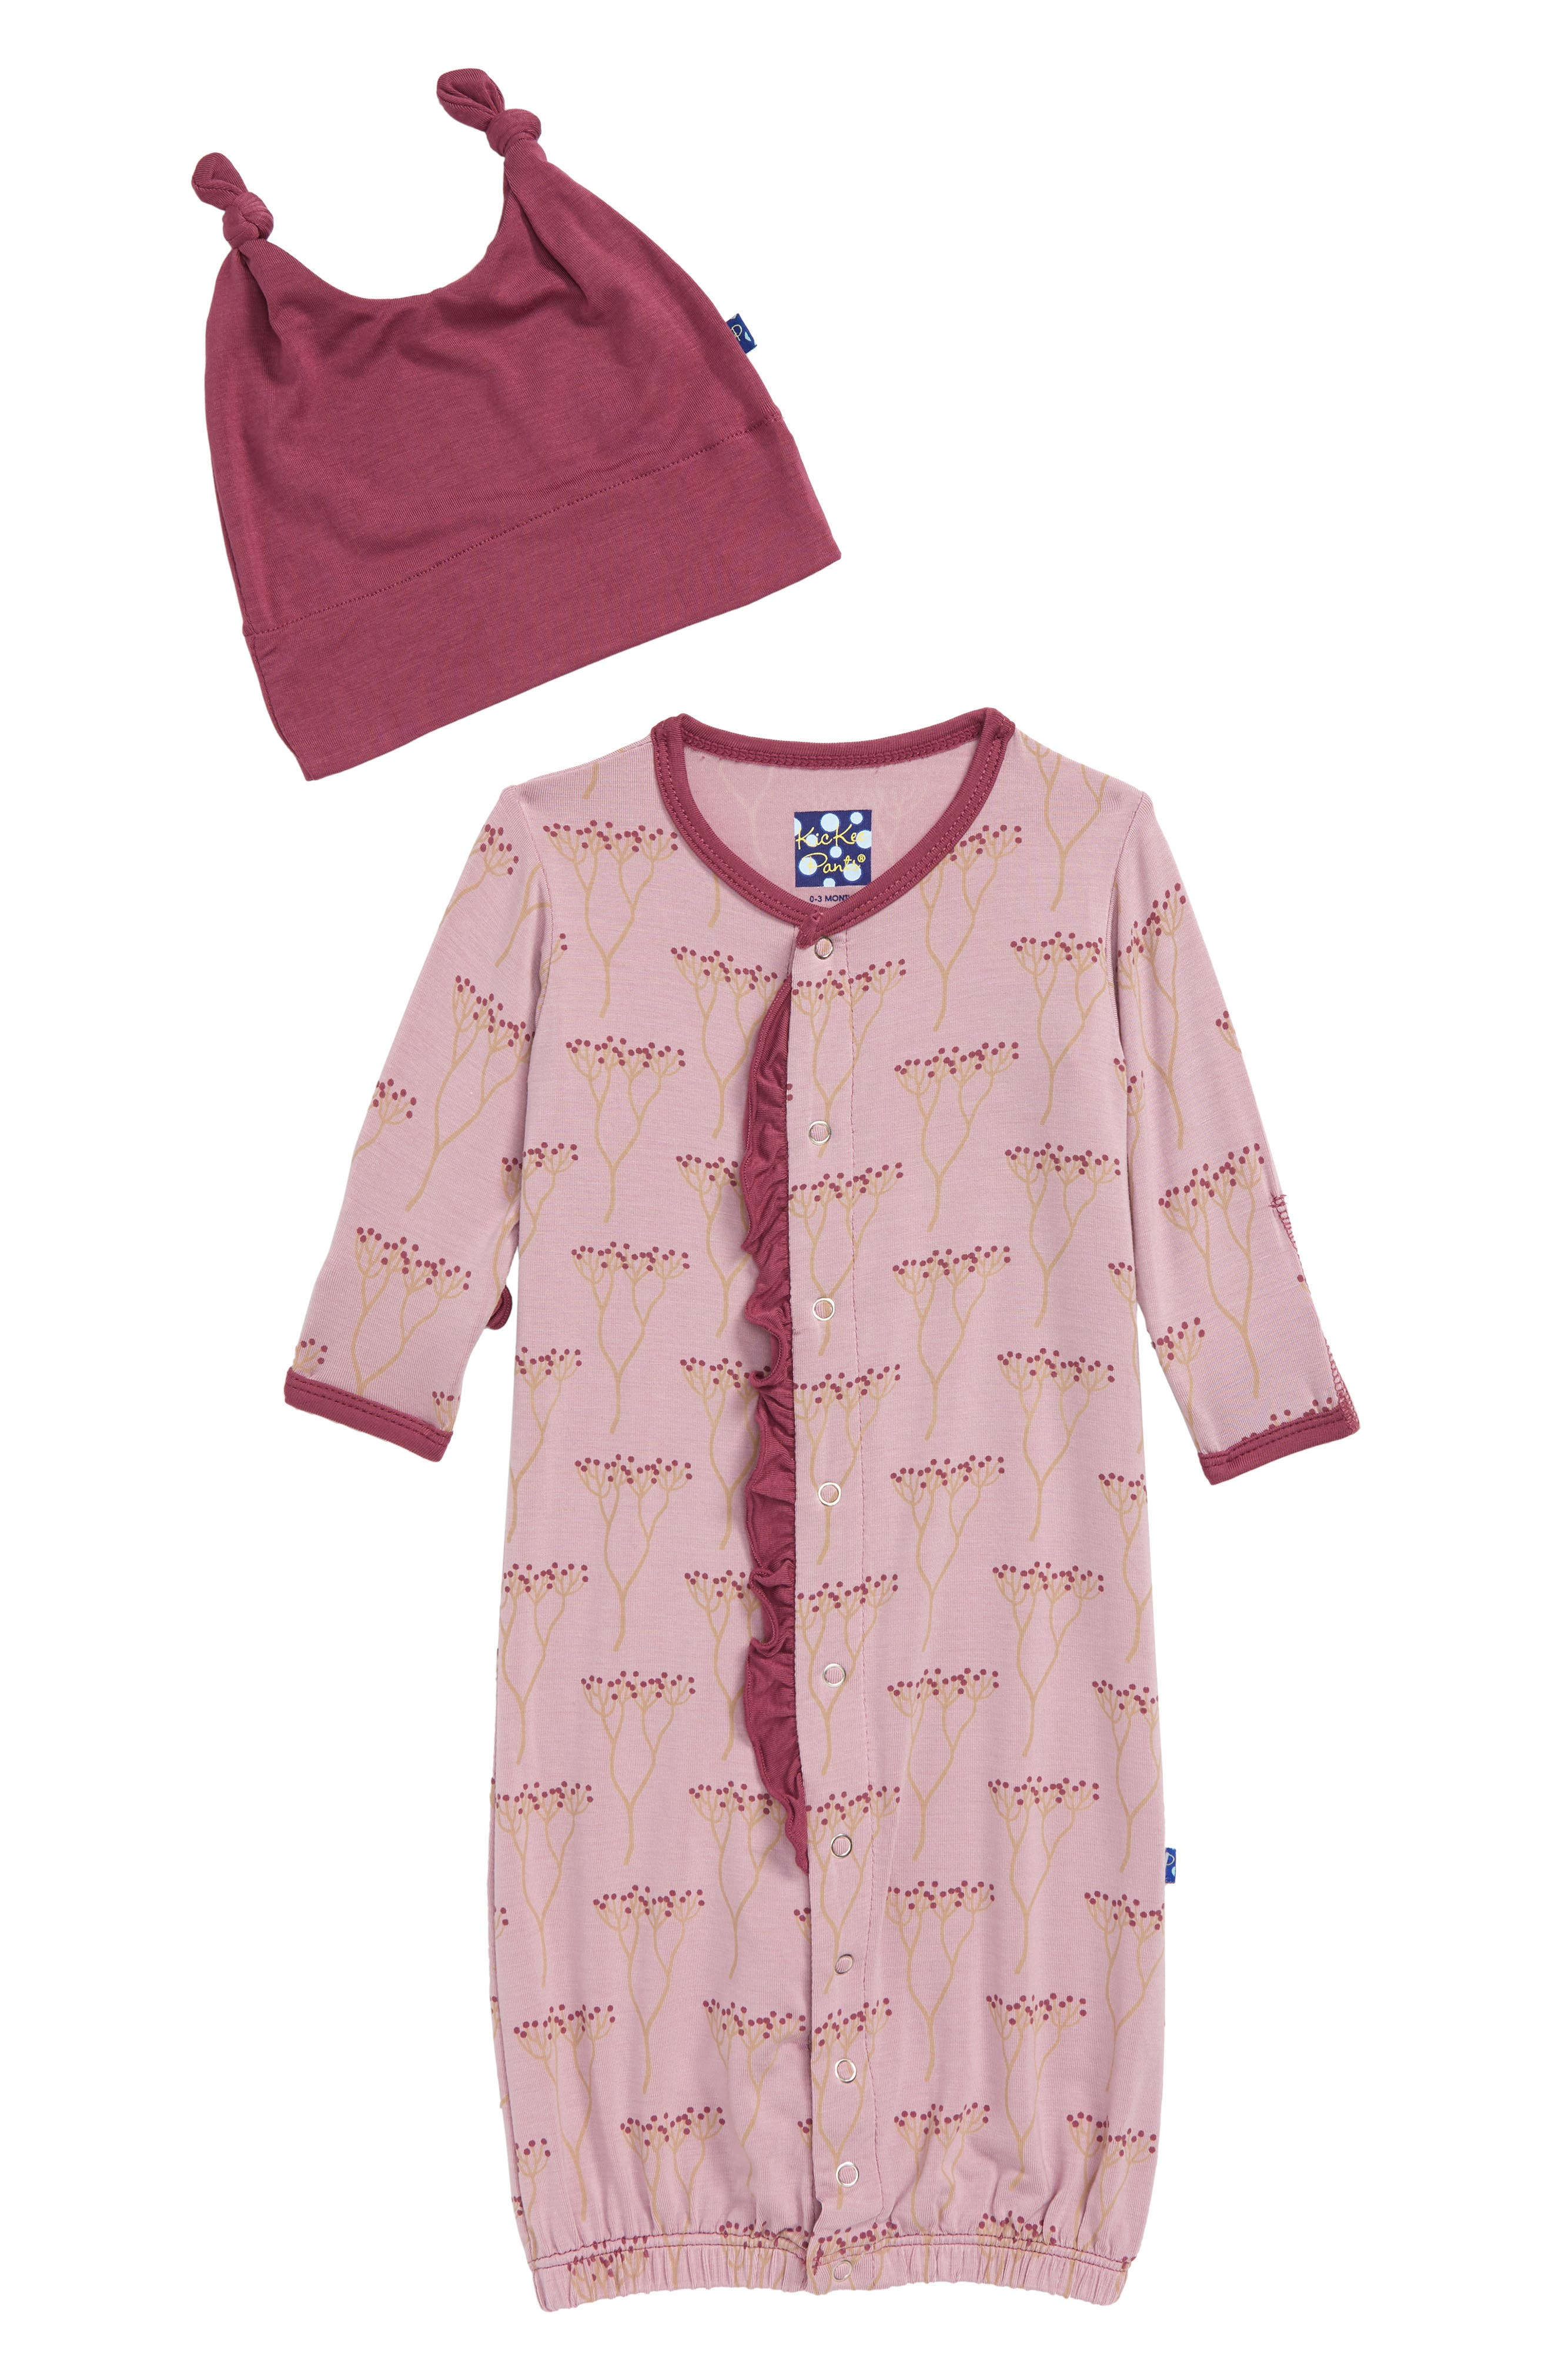 Infant Girls Kickee Pants Convertible Gown  Knot Hat Set Size 36M  Pink